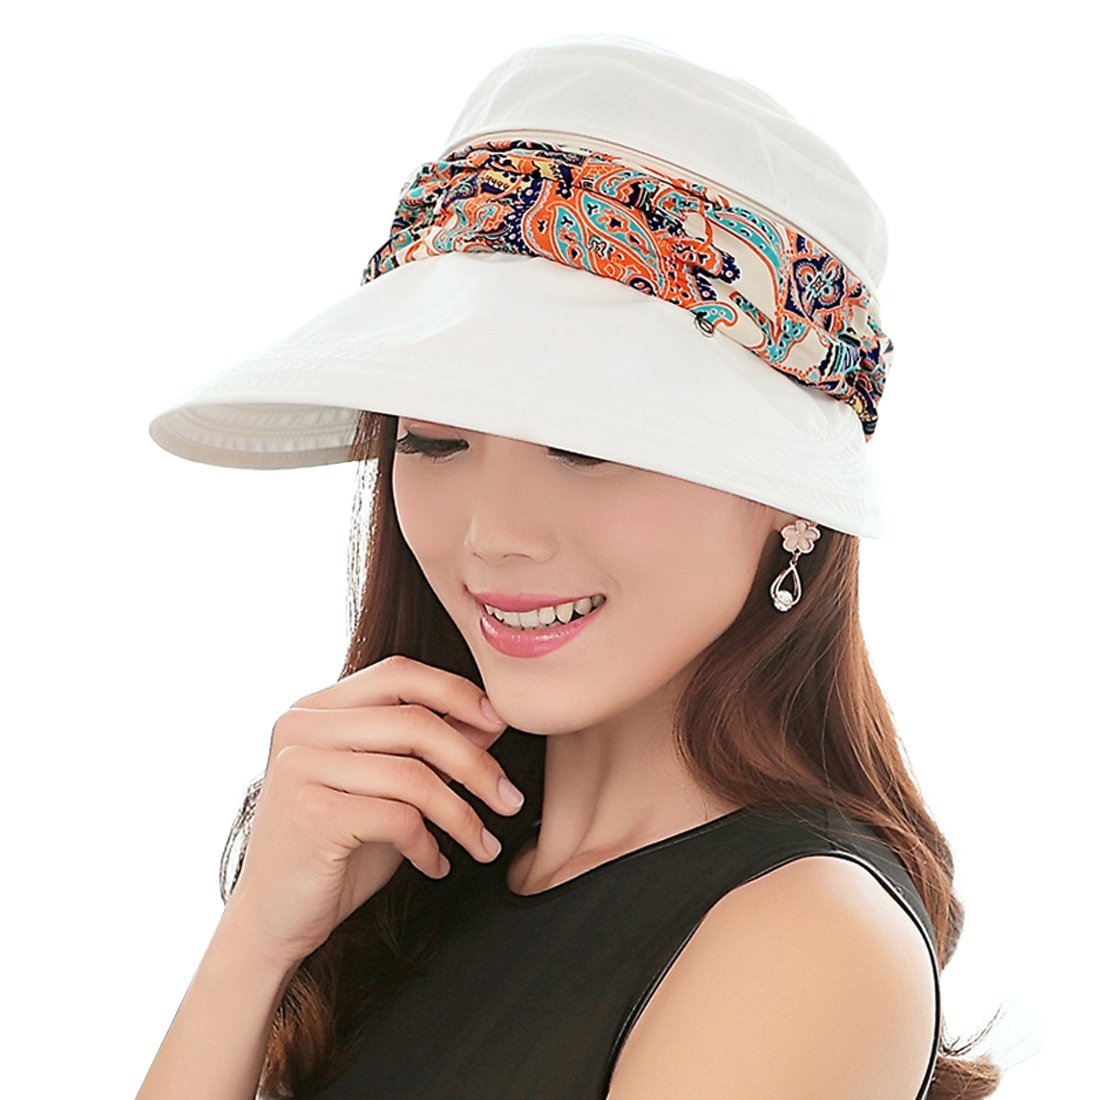 Women Floppy Wide Brim Hats UPF 50+ Beach Sun Hat with Removable Neck Face Cover